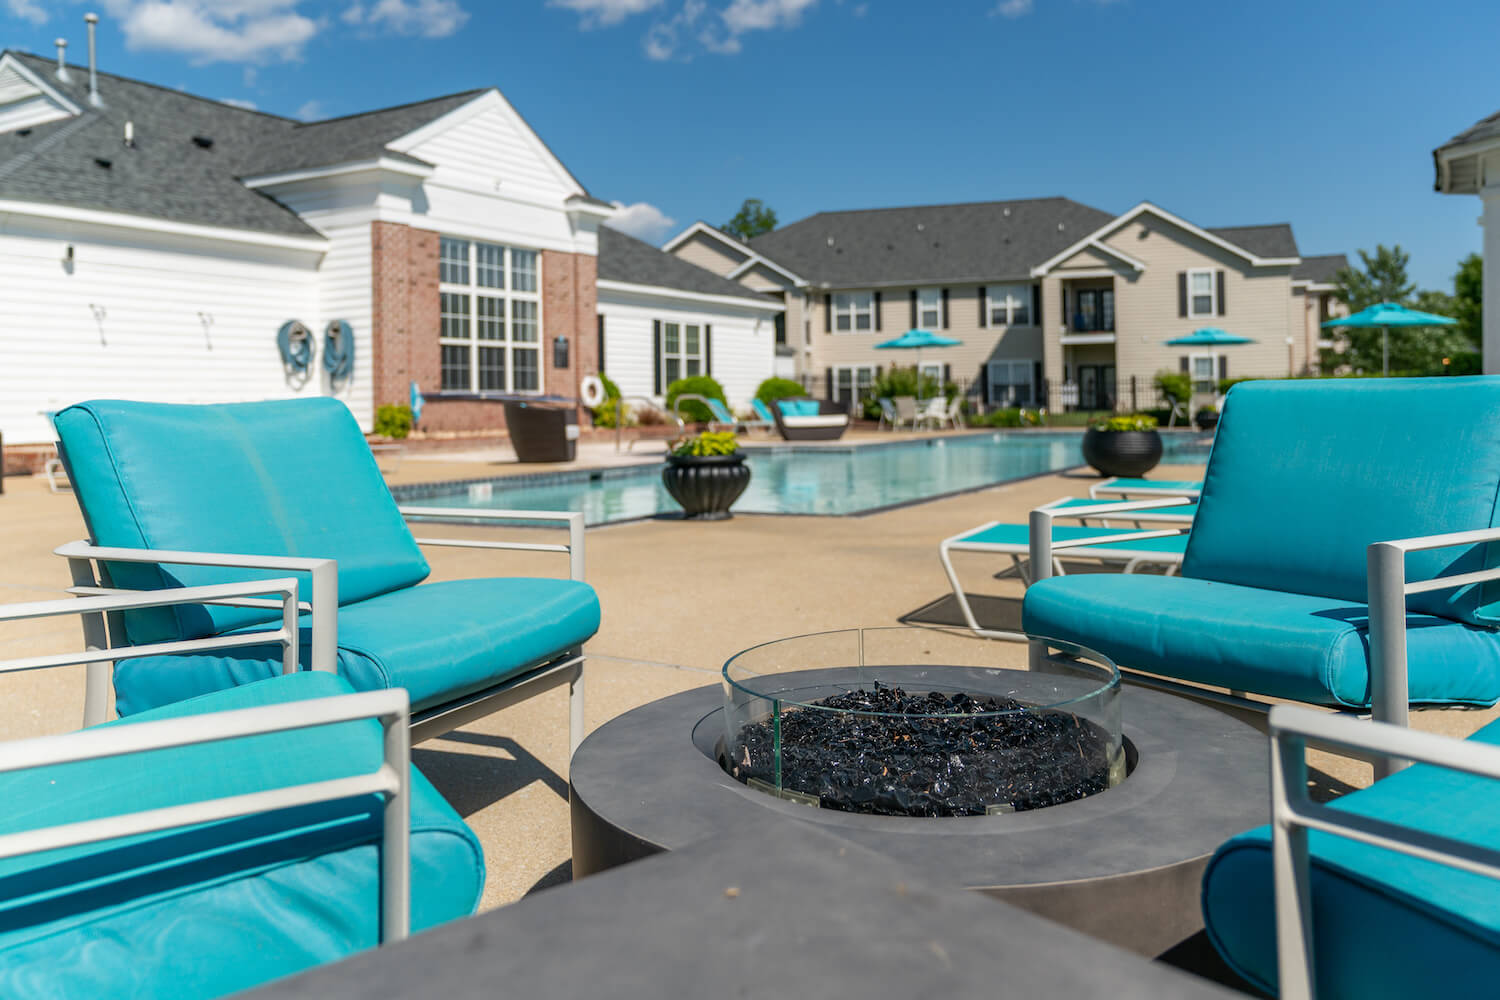 Outdoor pool area lounge seating with modern style fire pit.